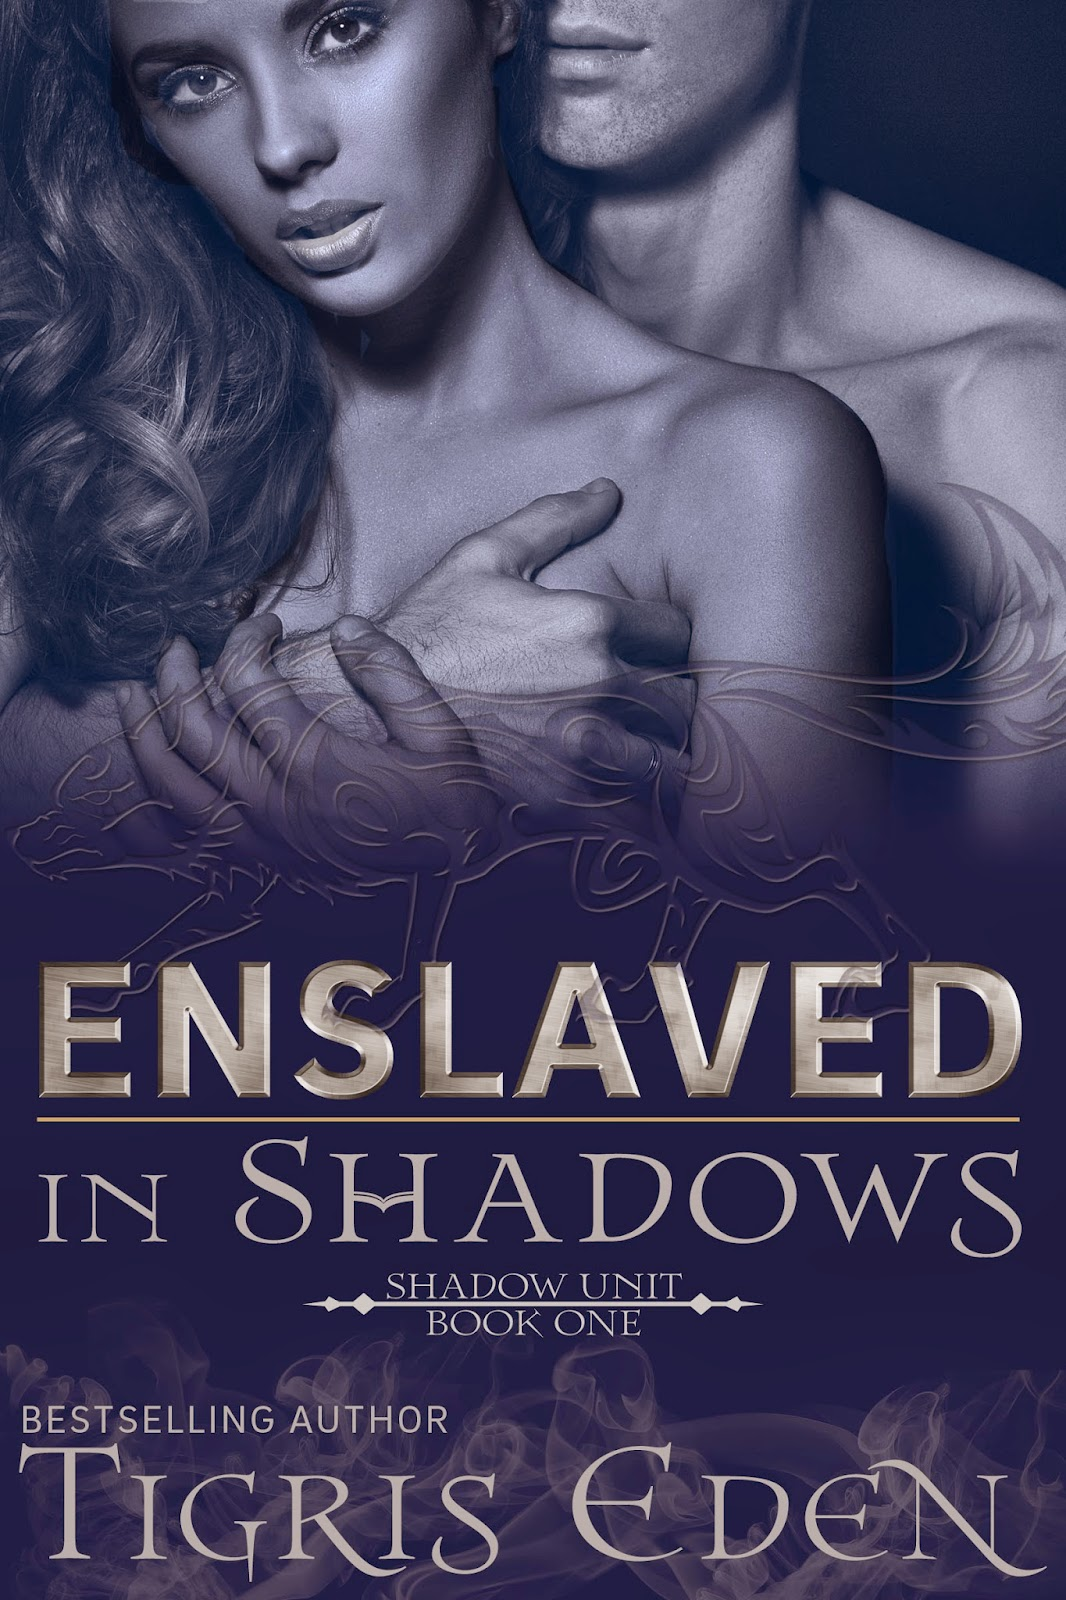 Enslaved in Shadows